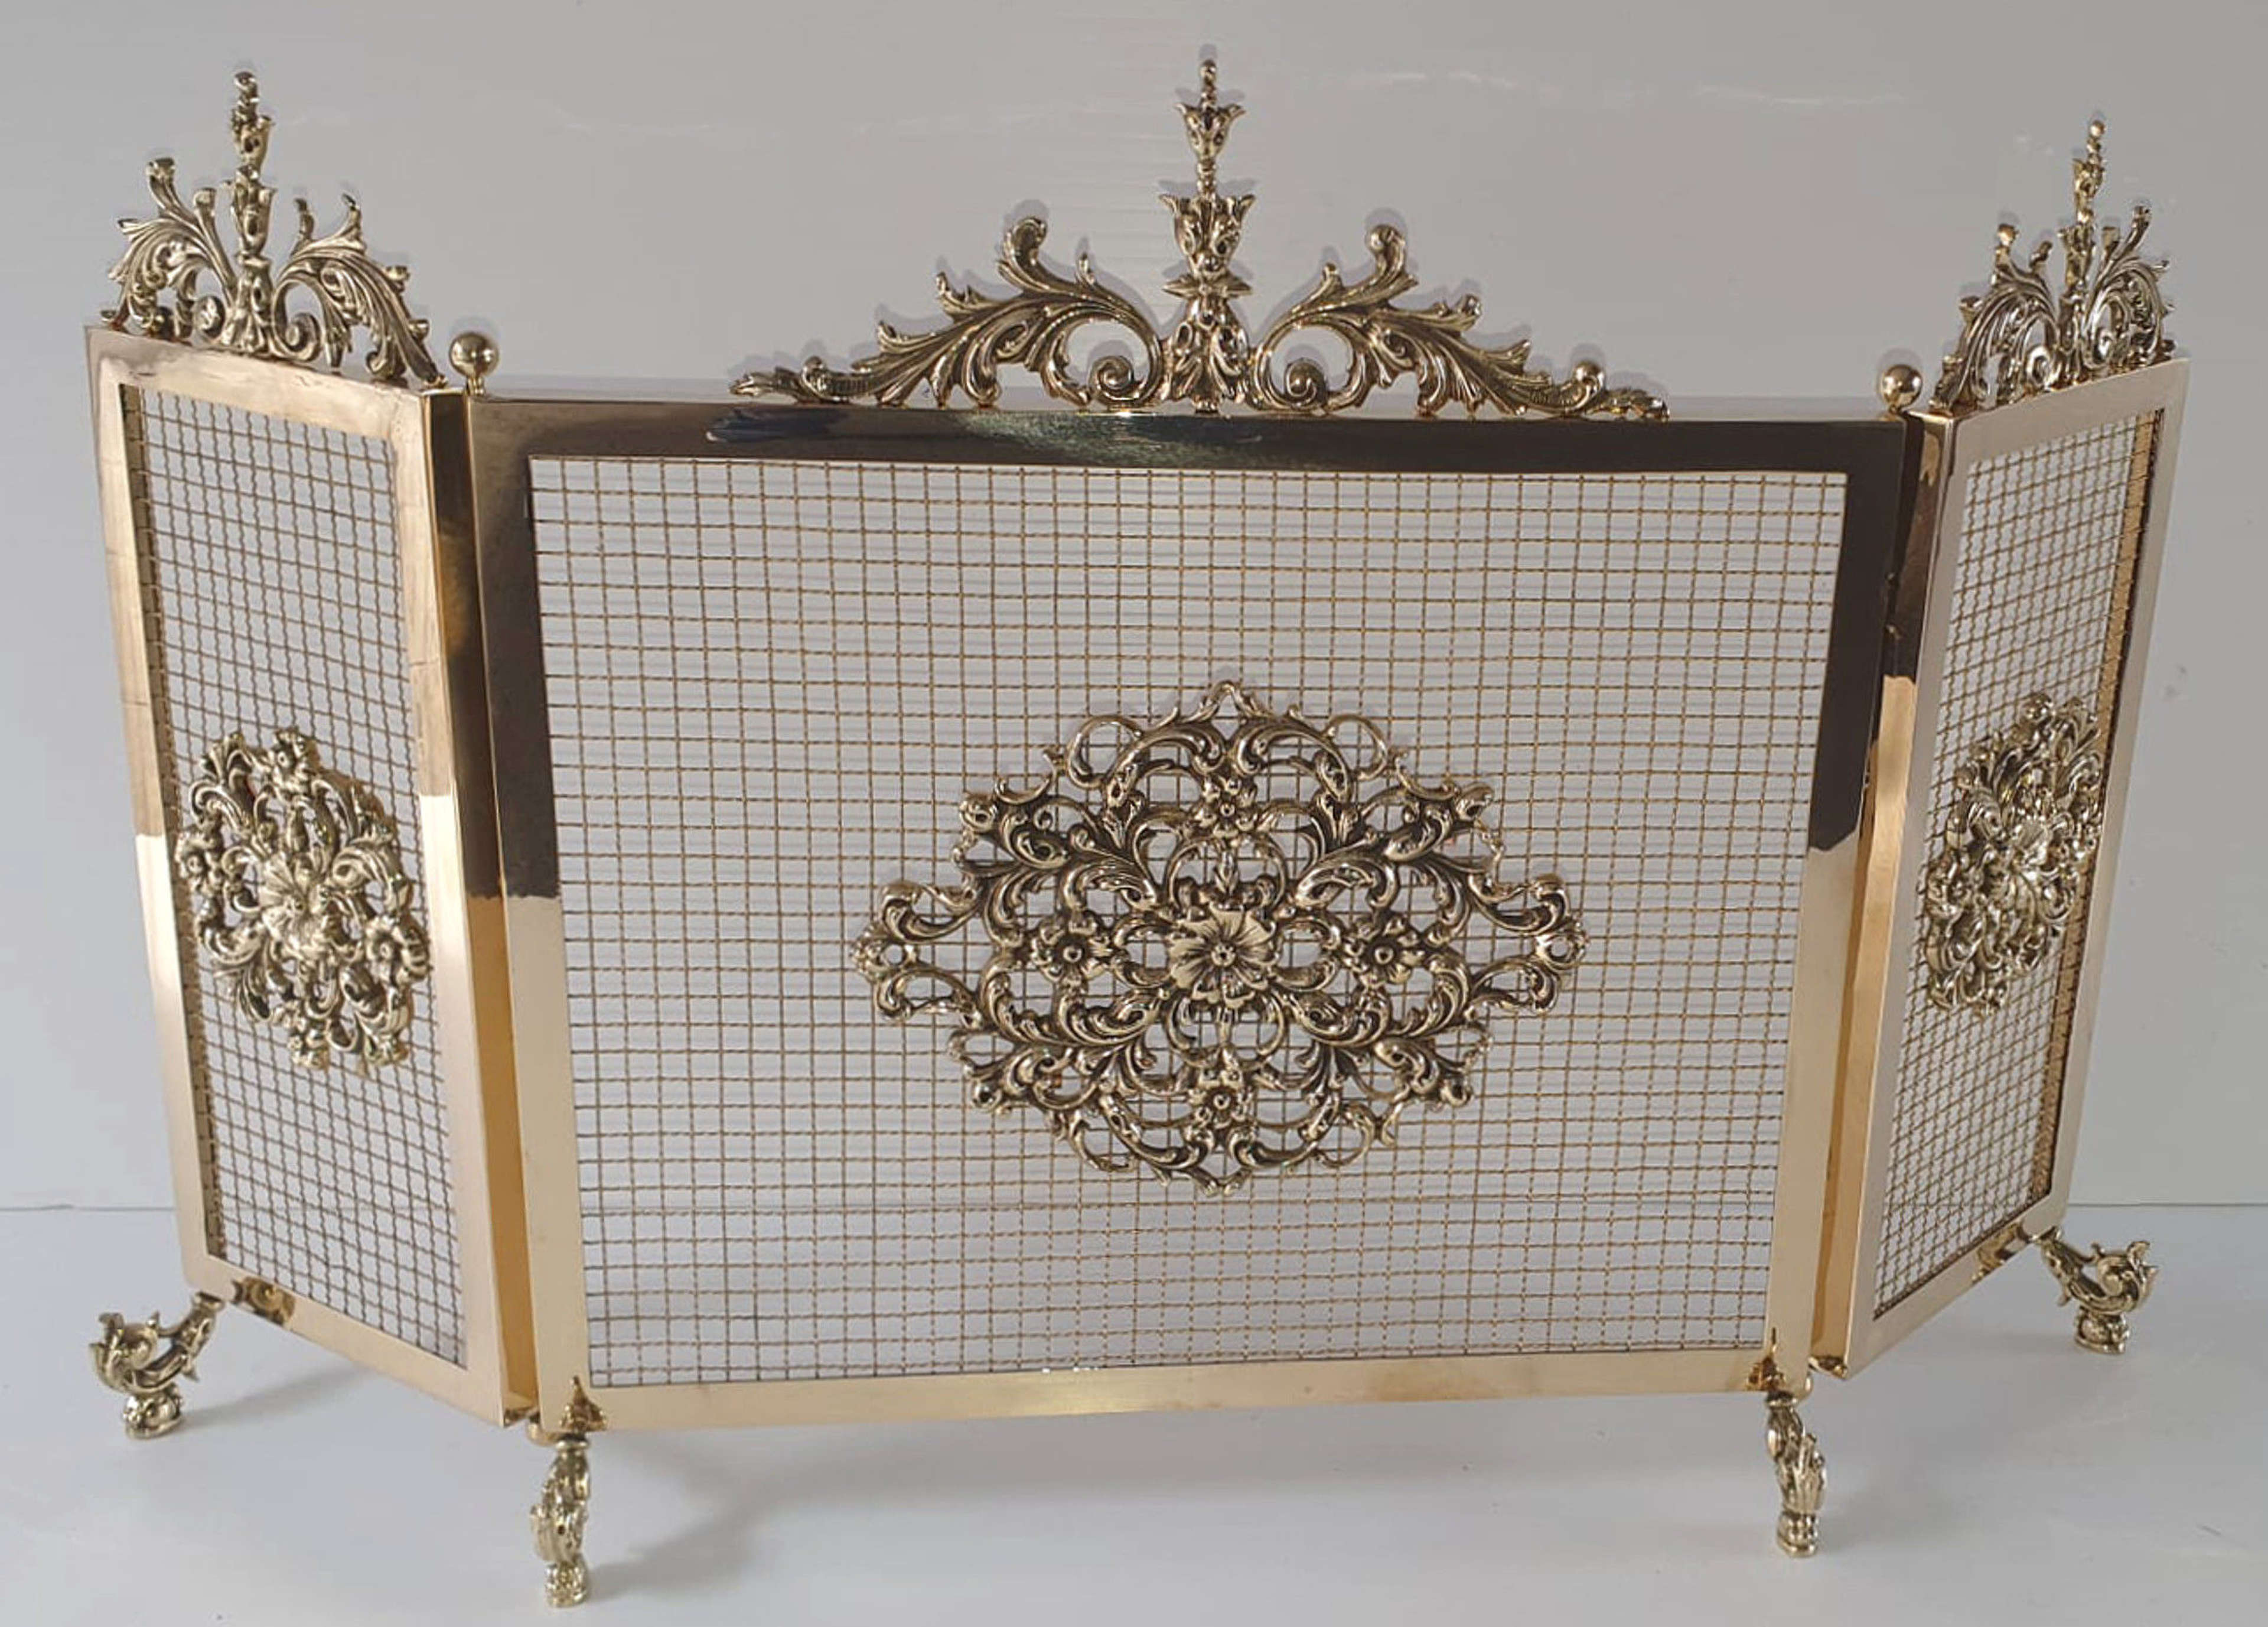 Rare Top Quality 19th Century Polished Brass Three Panel Fire Screen